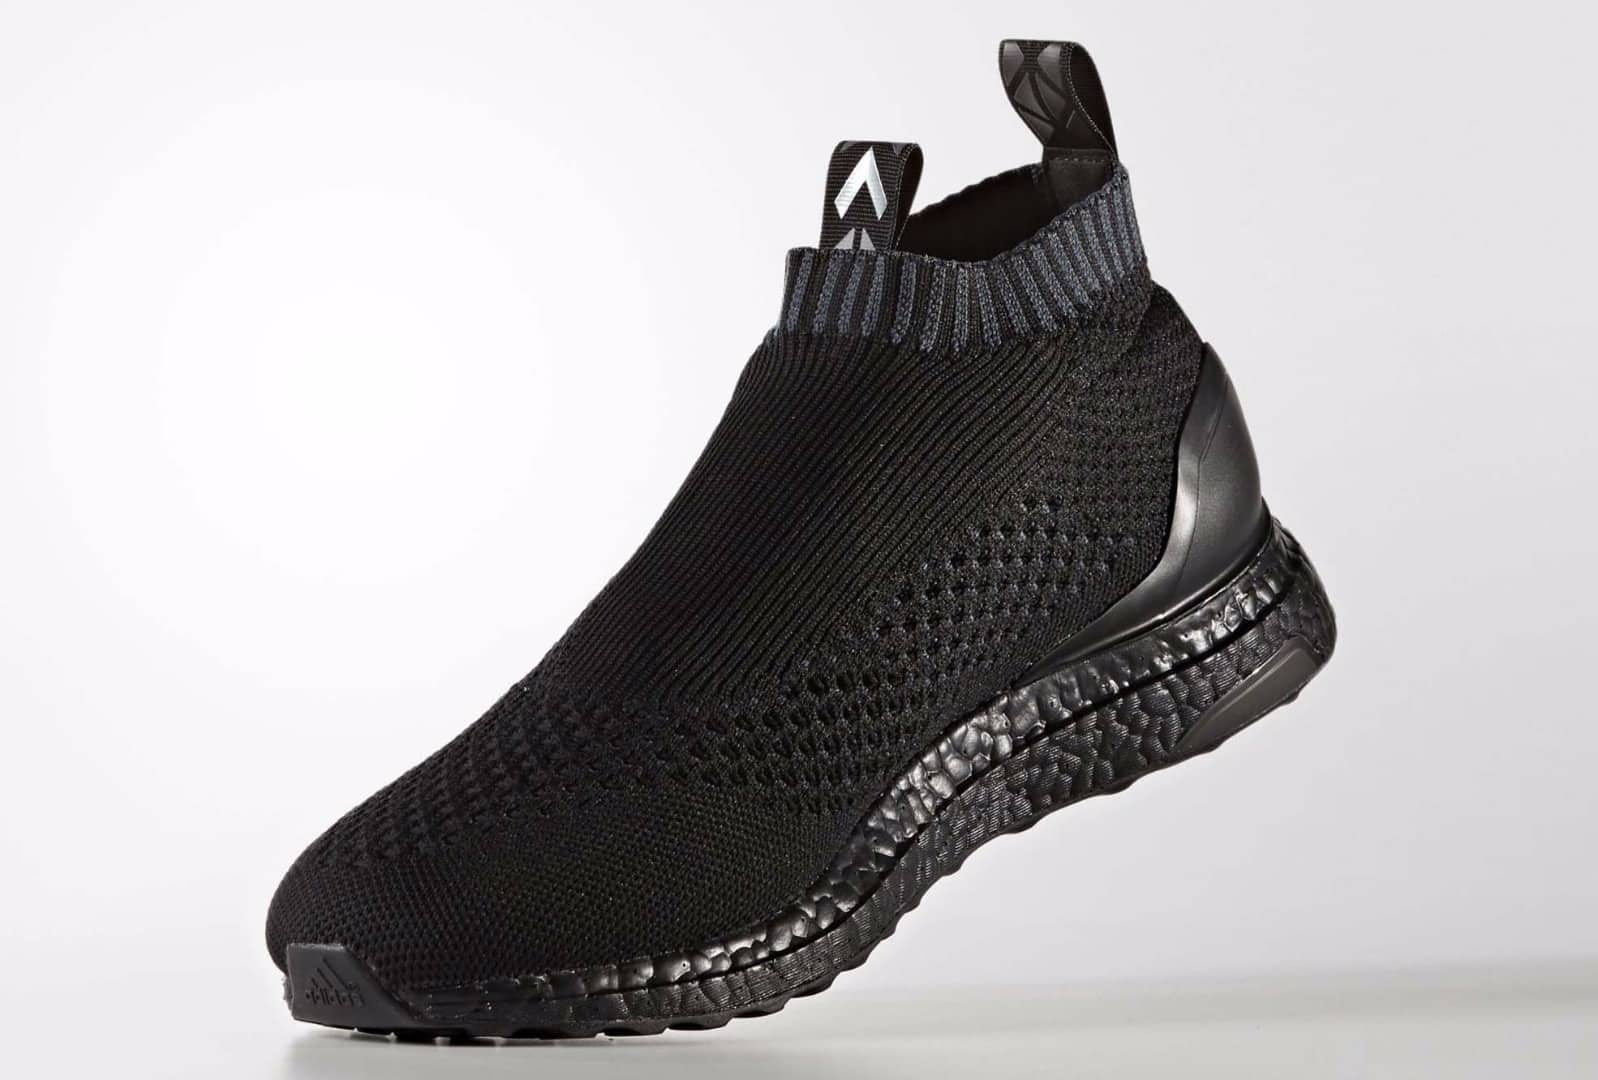 sneakers-adidas-ace16-purecontrol-ultra-boost-triple-black-img3